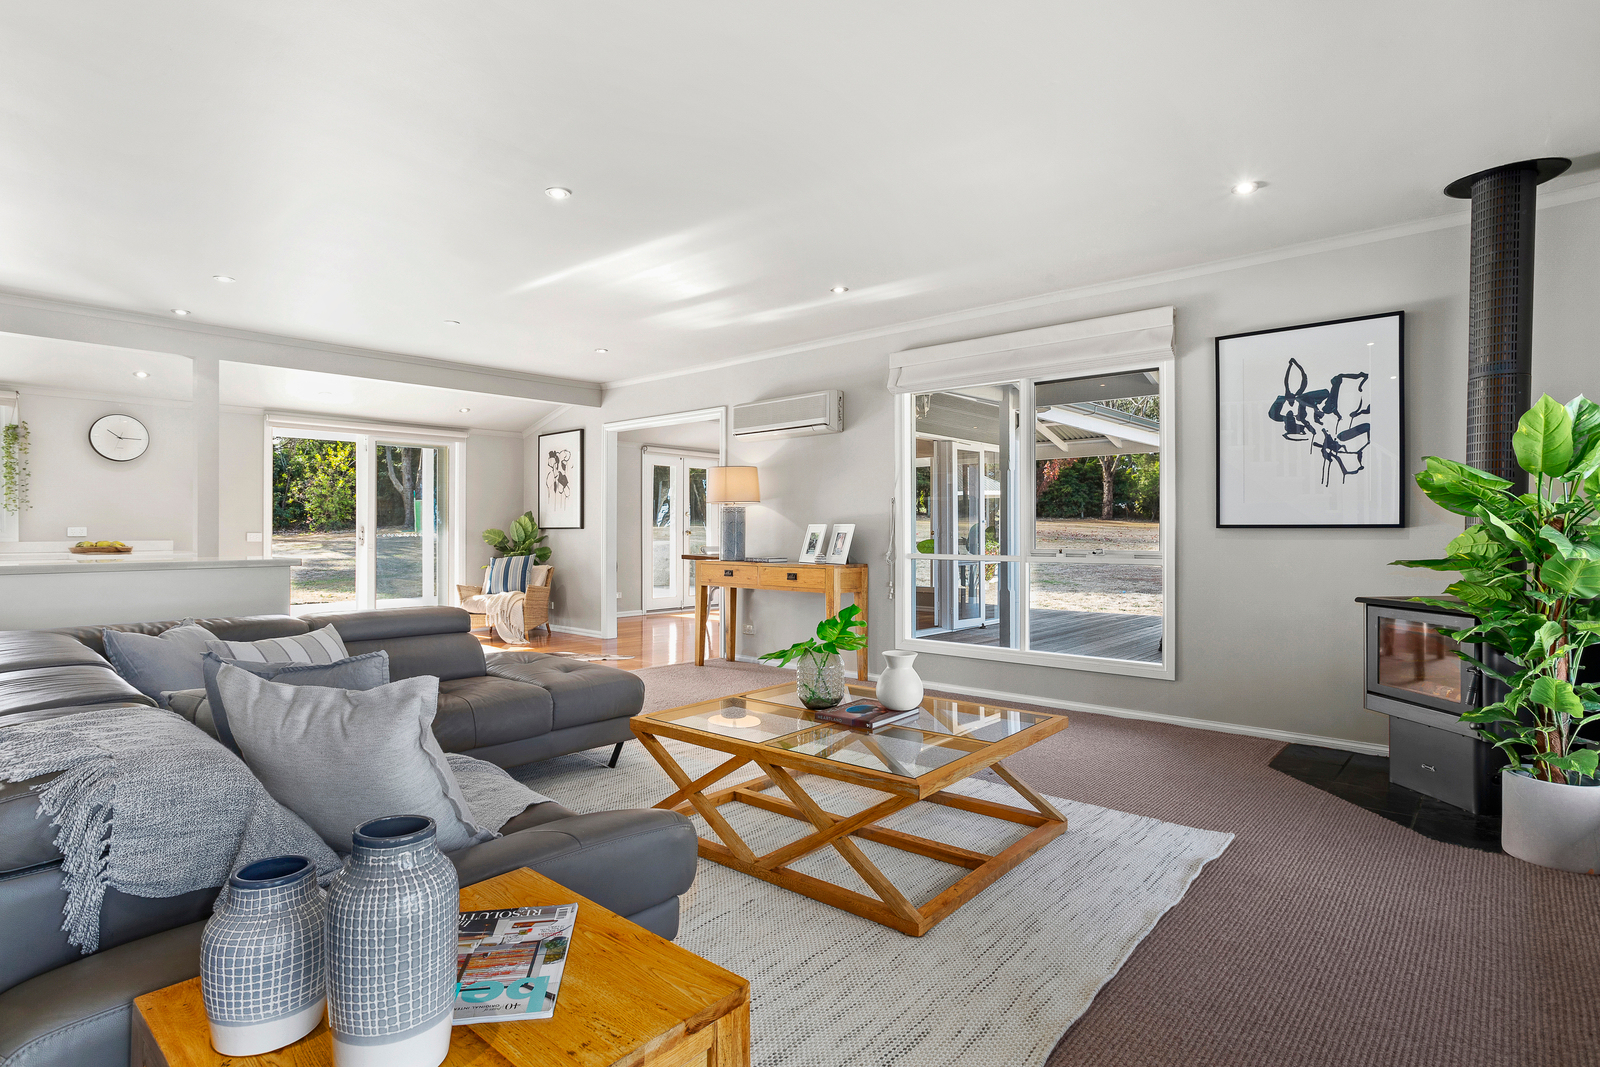 530 Tucks Road, Shoreham 3916 - Image 1